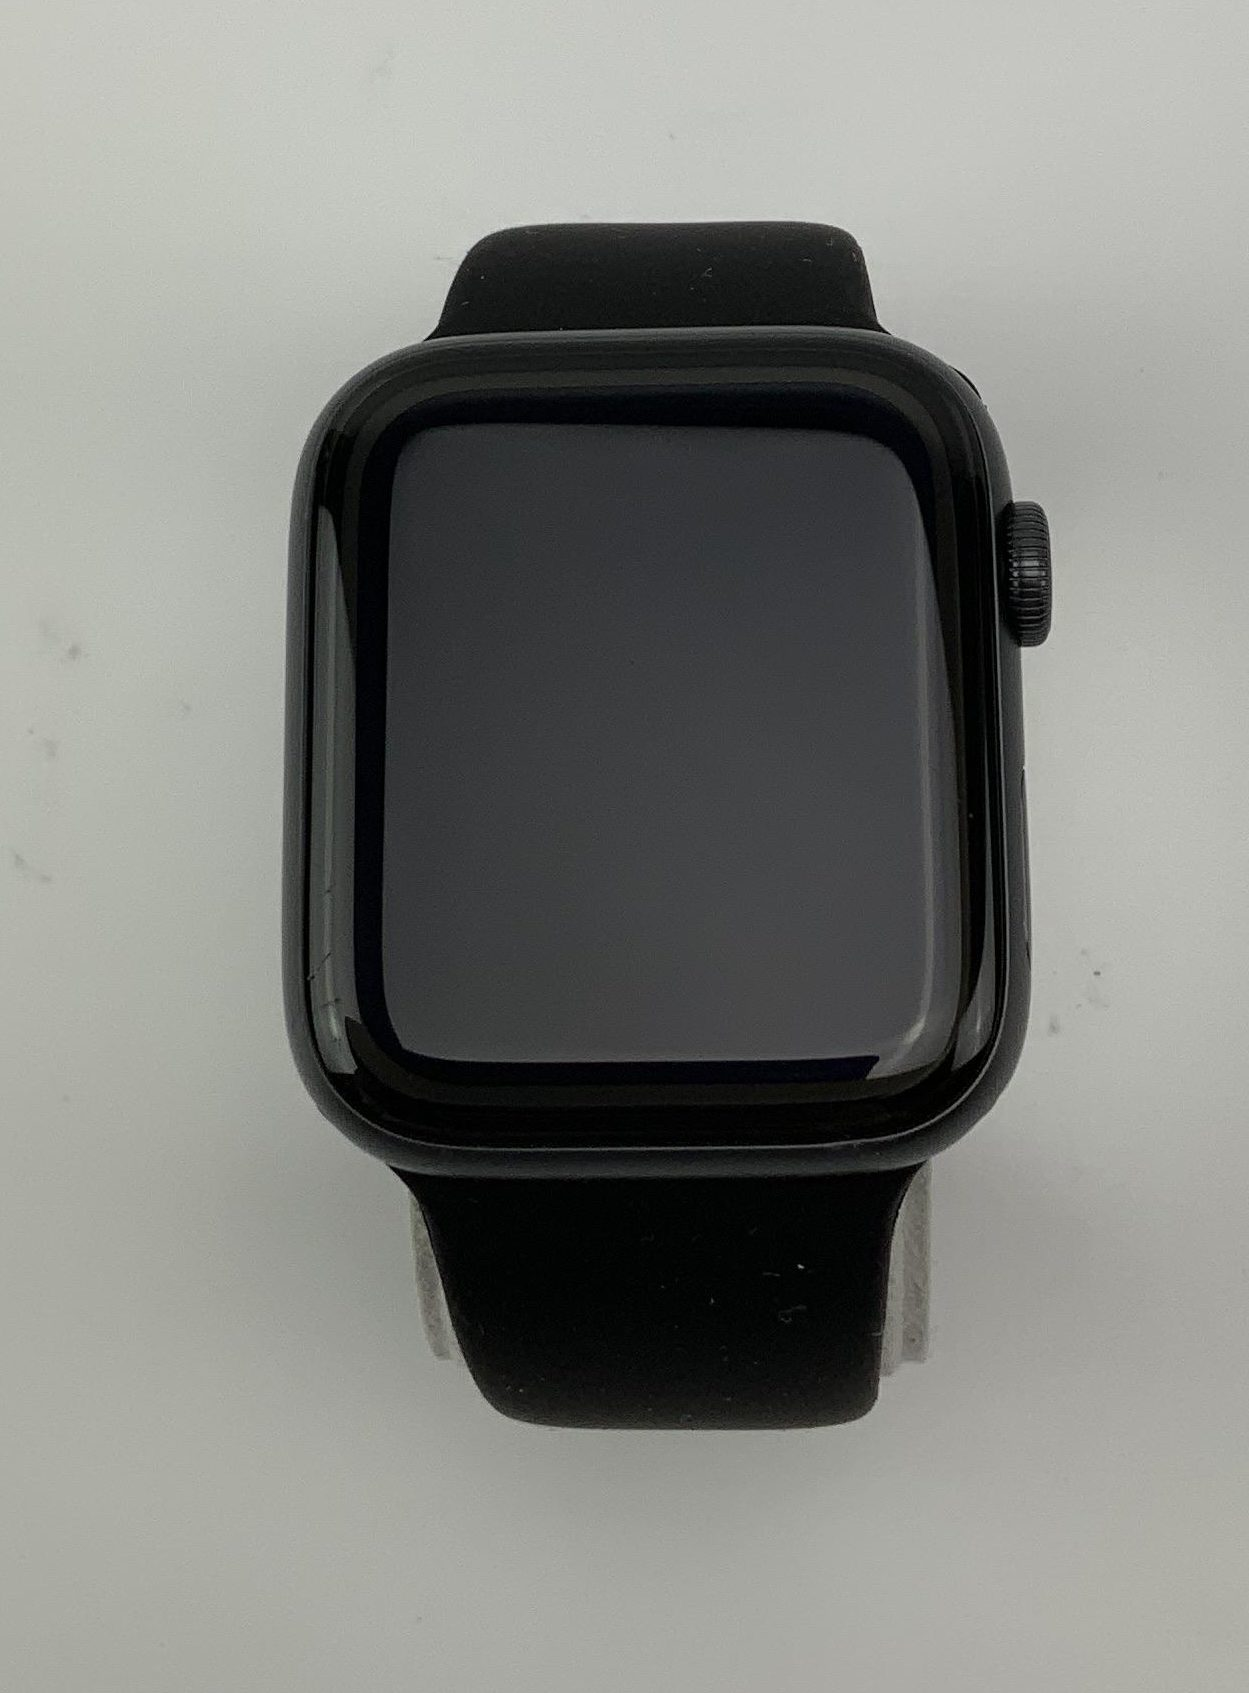 Watch Series 6 Aluminum (44mm), Space Gray, image 1